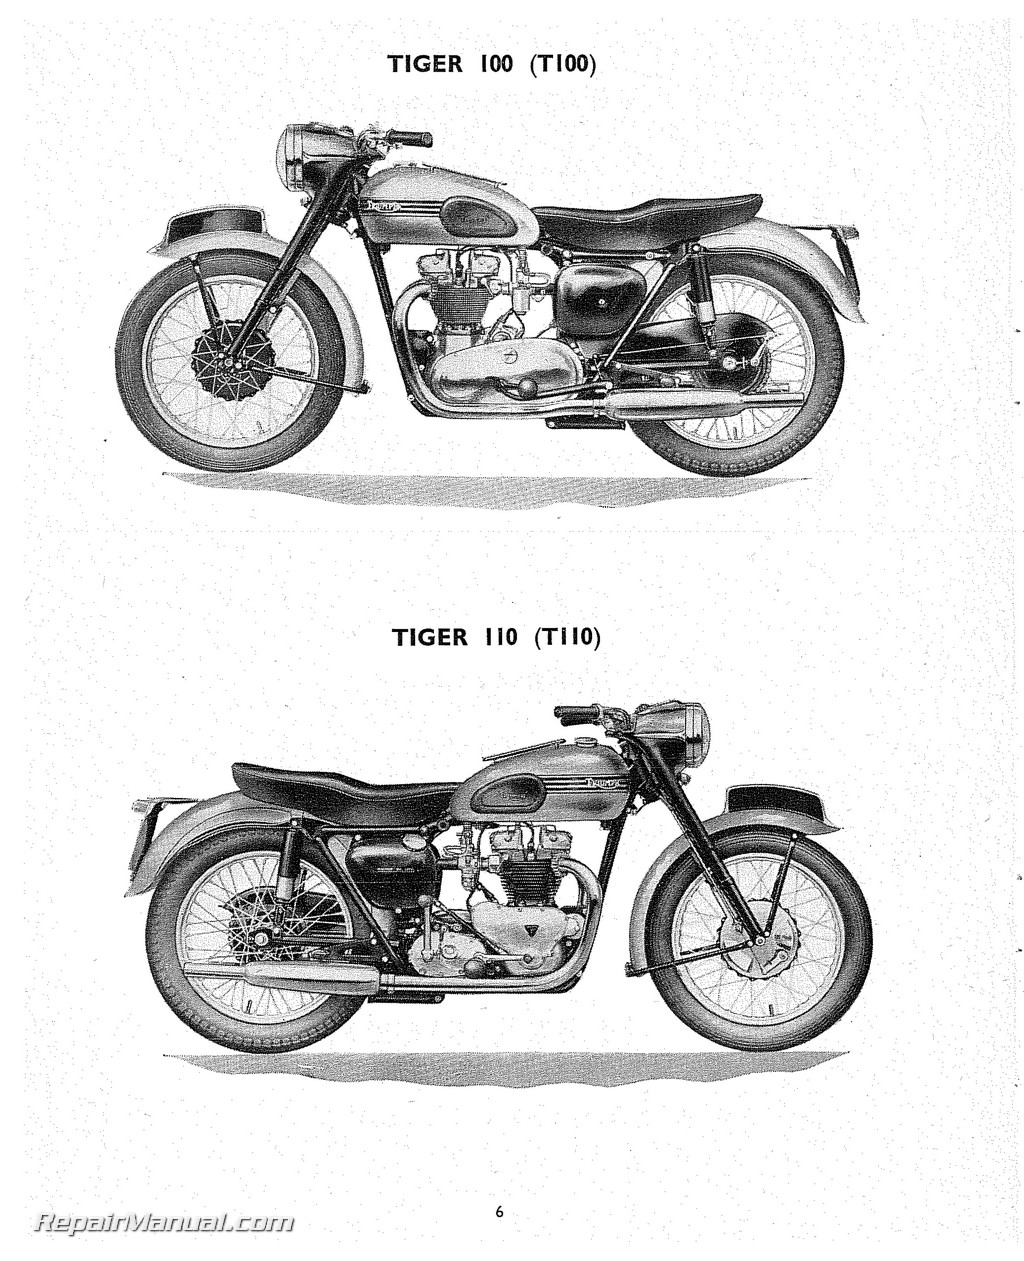 Triumph Replacement Parts Manual 1955 Speed Twin Thunderbird Tiger 100 110  Trophy